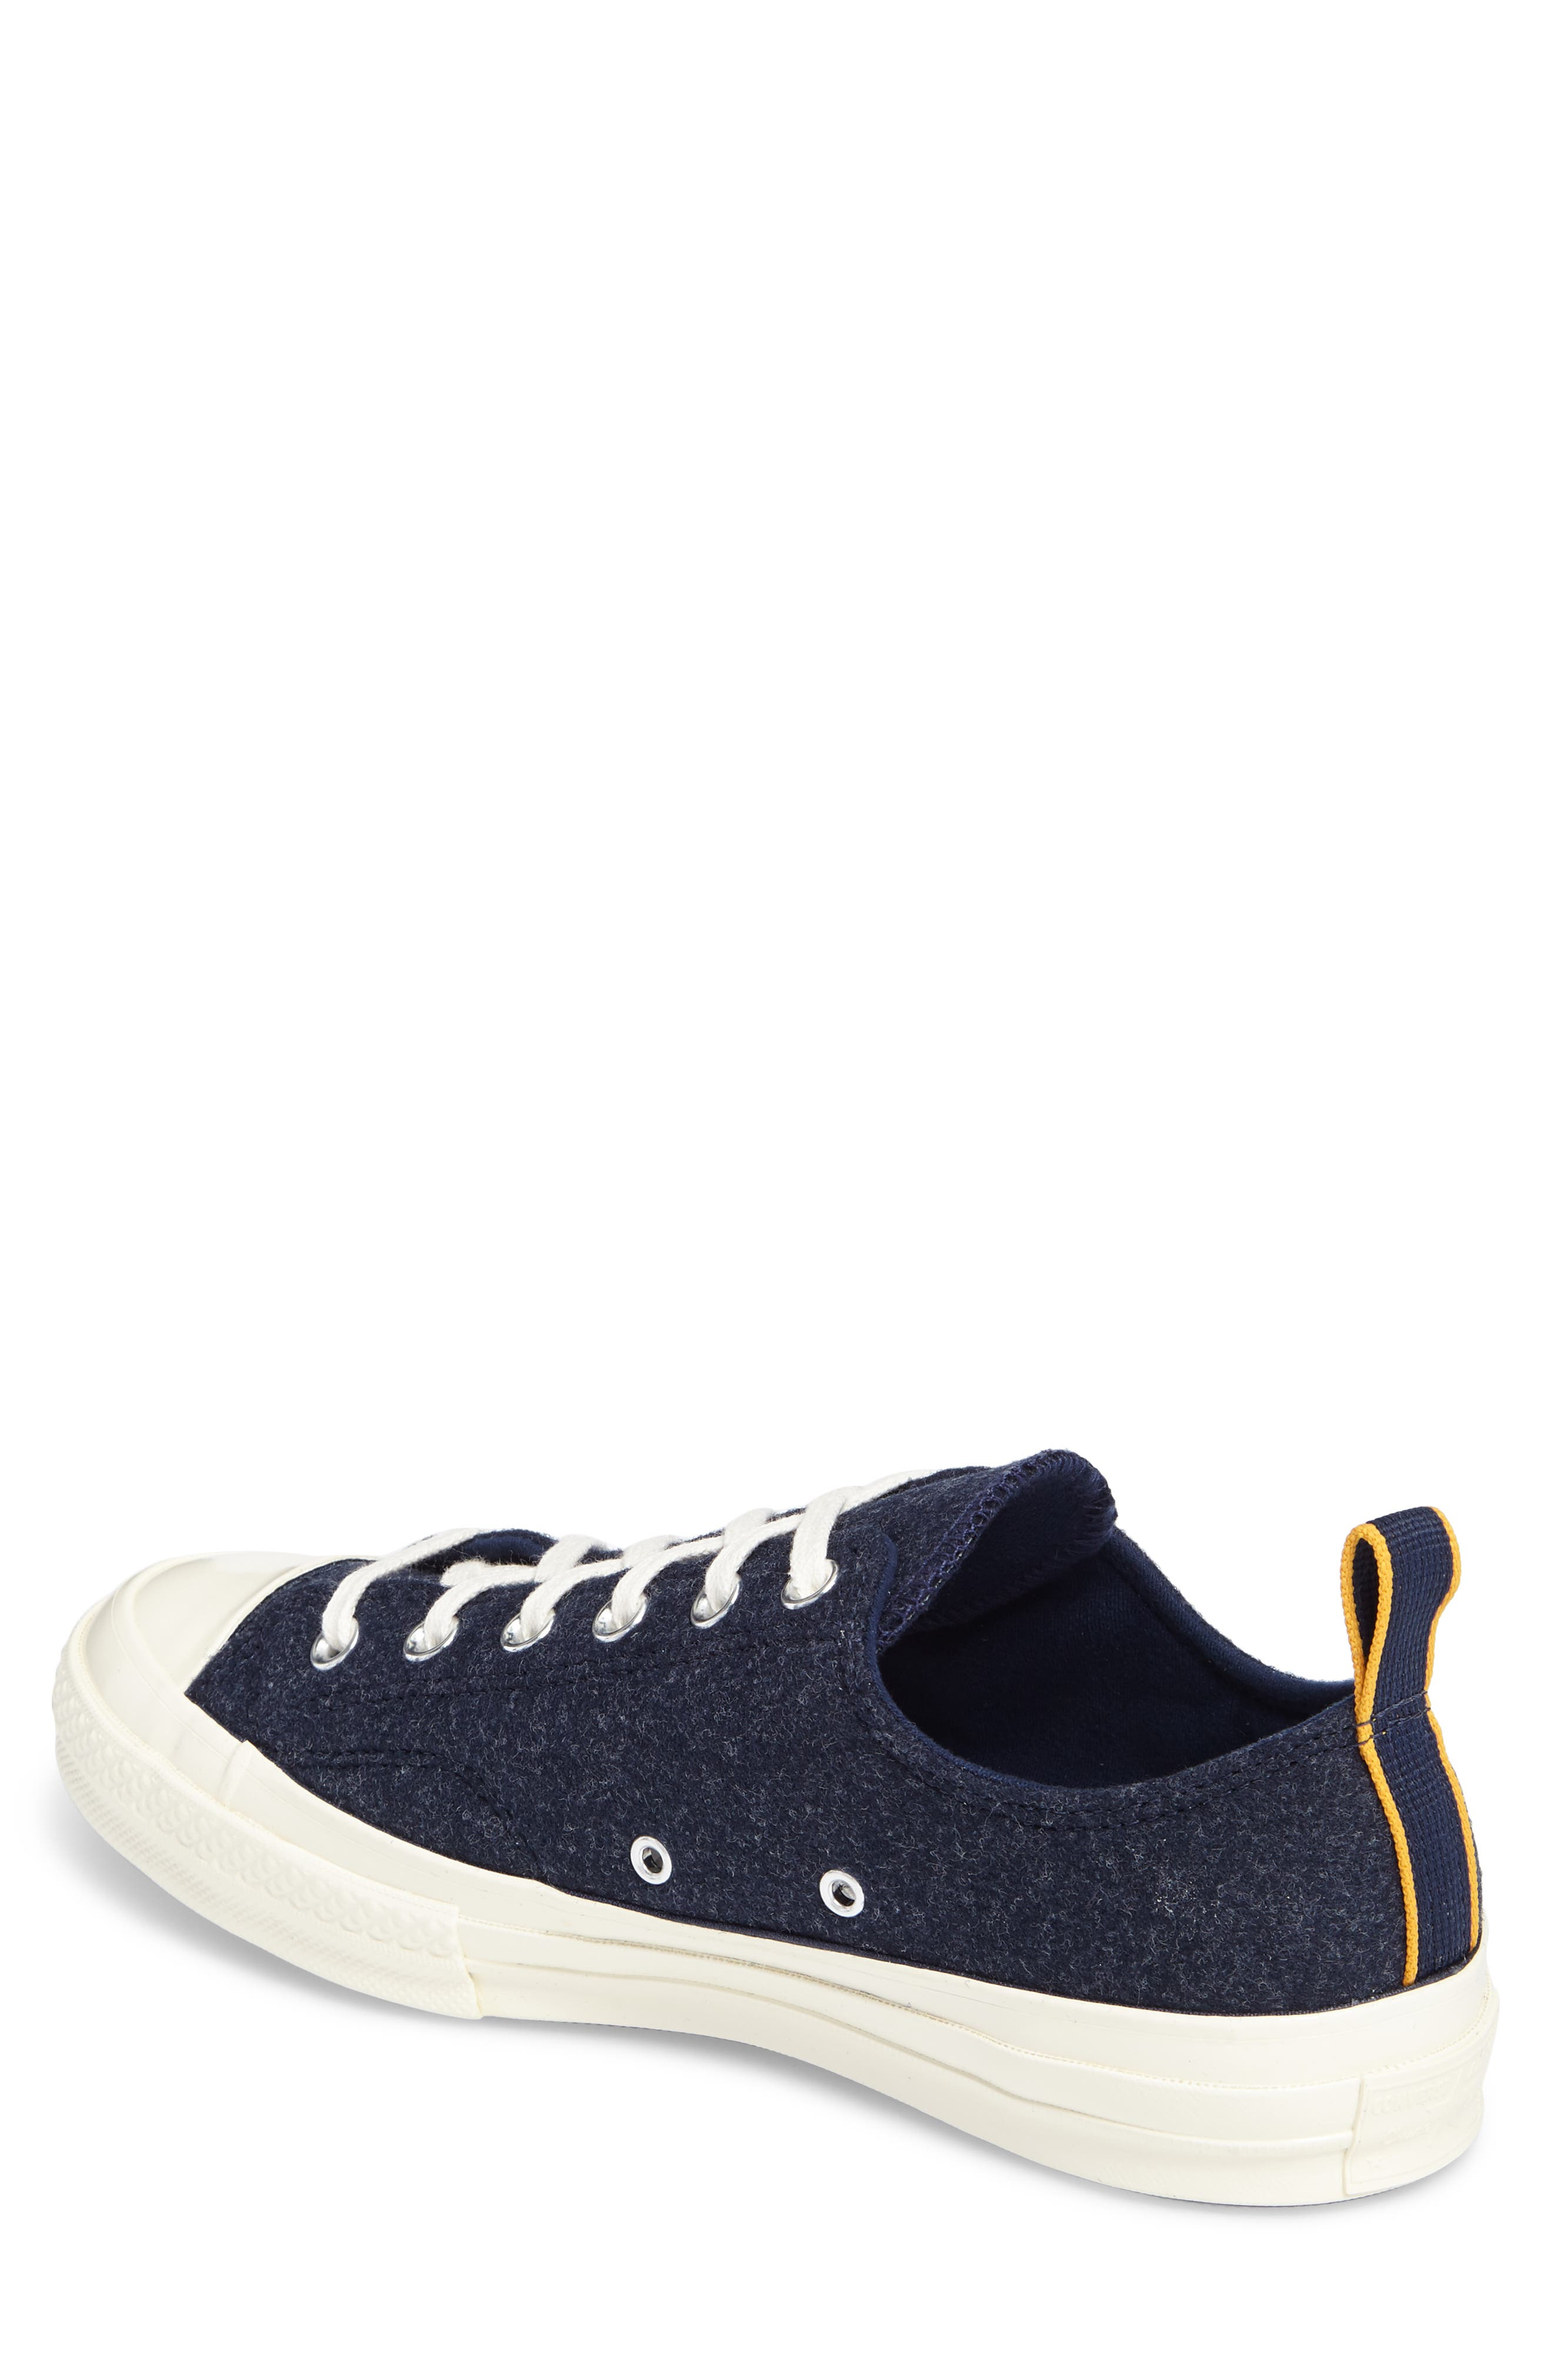 Chuck Taylor<sup>®</sup> 70 Heritage Sneaker,                             Alternate thumbnail 2, color,                             471